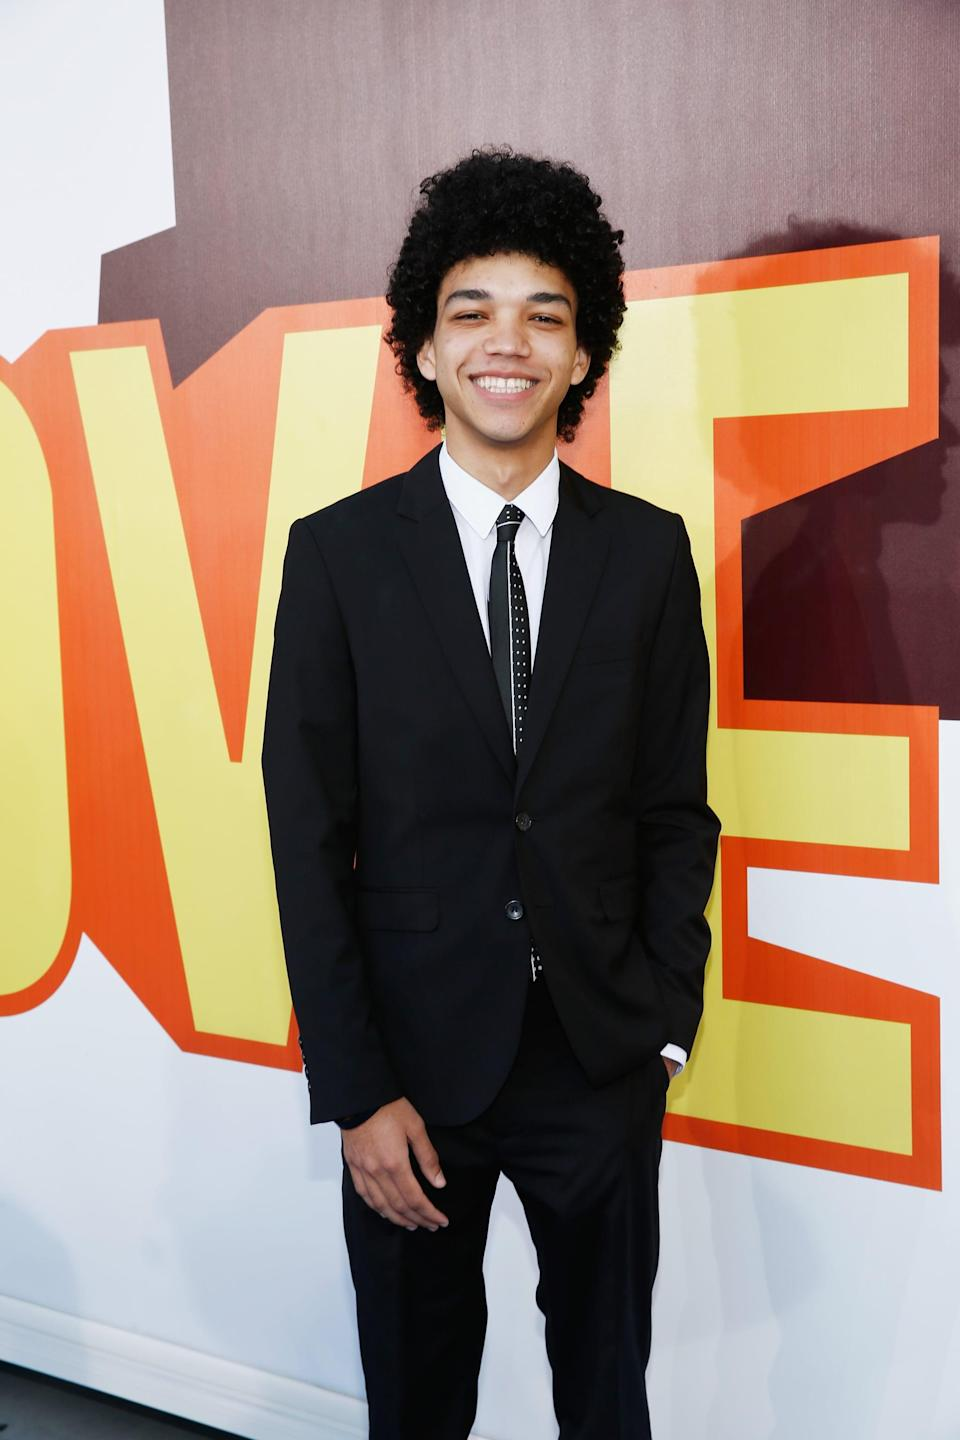 """<p>It's not uncommon for budding Hollywood stars to have to dress themselves sans stylist in the early years of their careers. That was the case for Justice at his first red carpet experience, the 2015 MTV Movie Awards. Without a stylist, Justice had to search through his closet for a red-carpet-worthy outfit. """"<a href=""""http://youtu.be/JwlEKoJnoXA"""" class=""""link rapid-noclick-resp"""" rel=""""nofollow noopener"""" target=""""_blank"""" data-ylk=""""slk:I wore a suit that I found in the back of my closet"""">I wore a suit that I found in the back of my closet</a> and some dirty tennis shoes,"""" he told BuzzFeed. """"It's on the internet; it is disgraceful."""" </p>"""